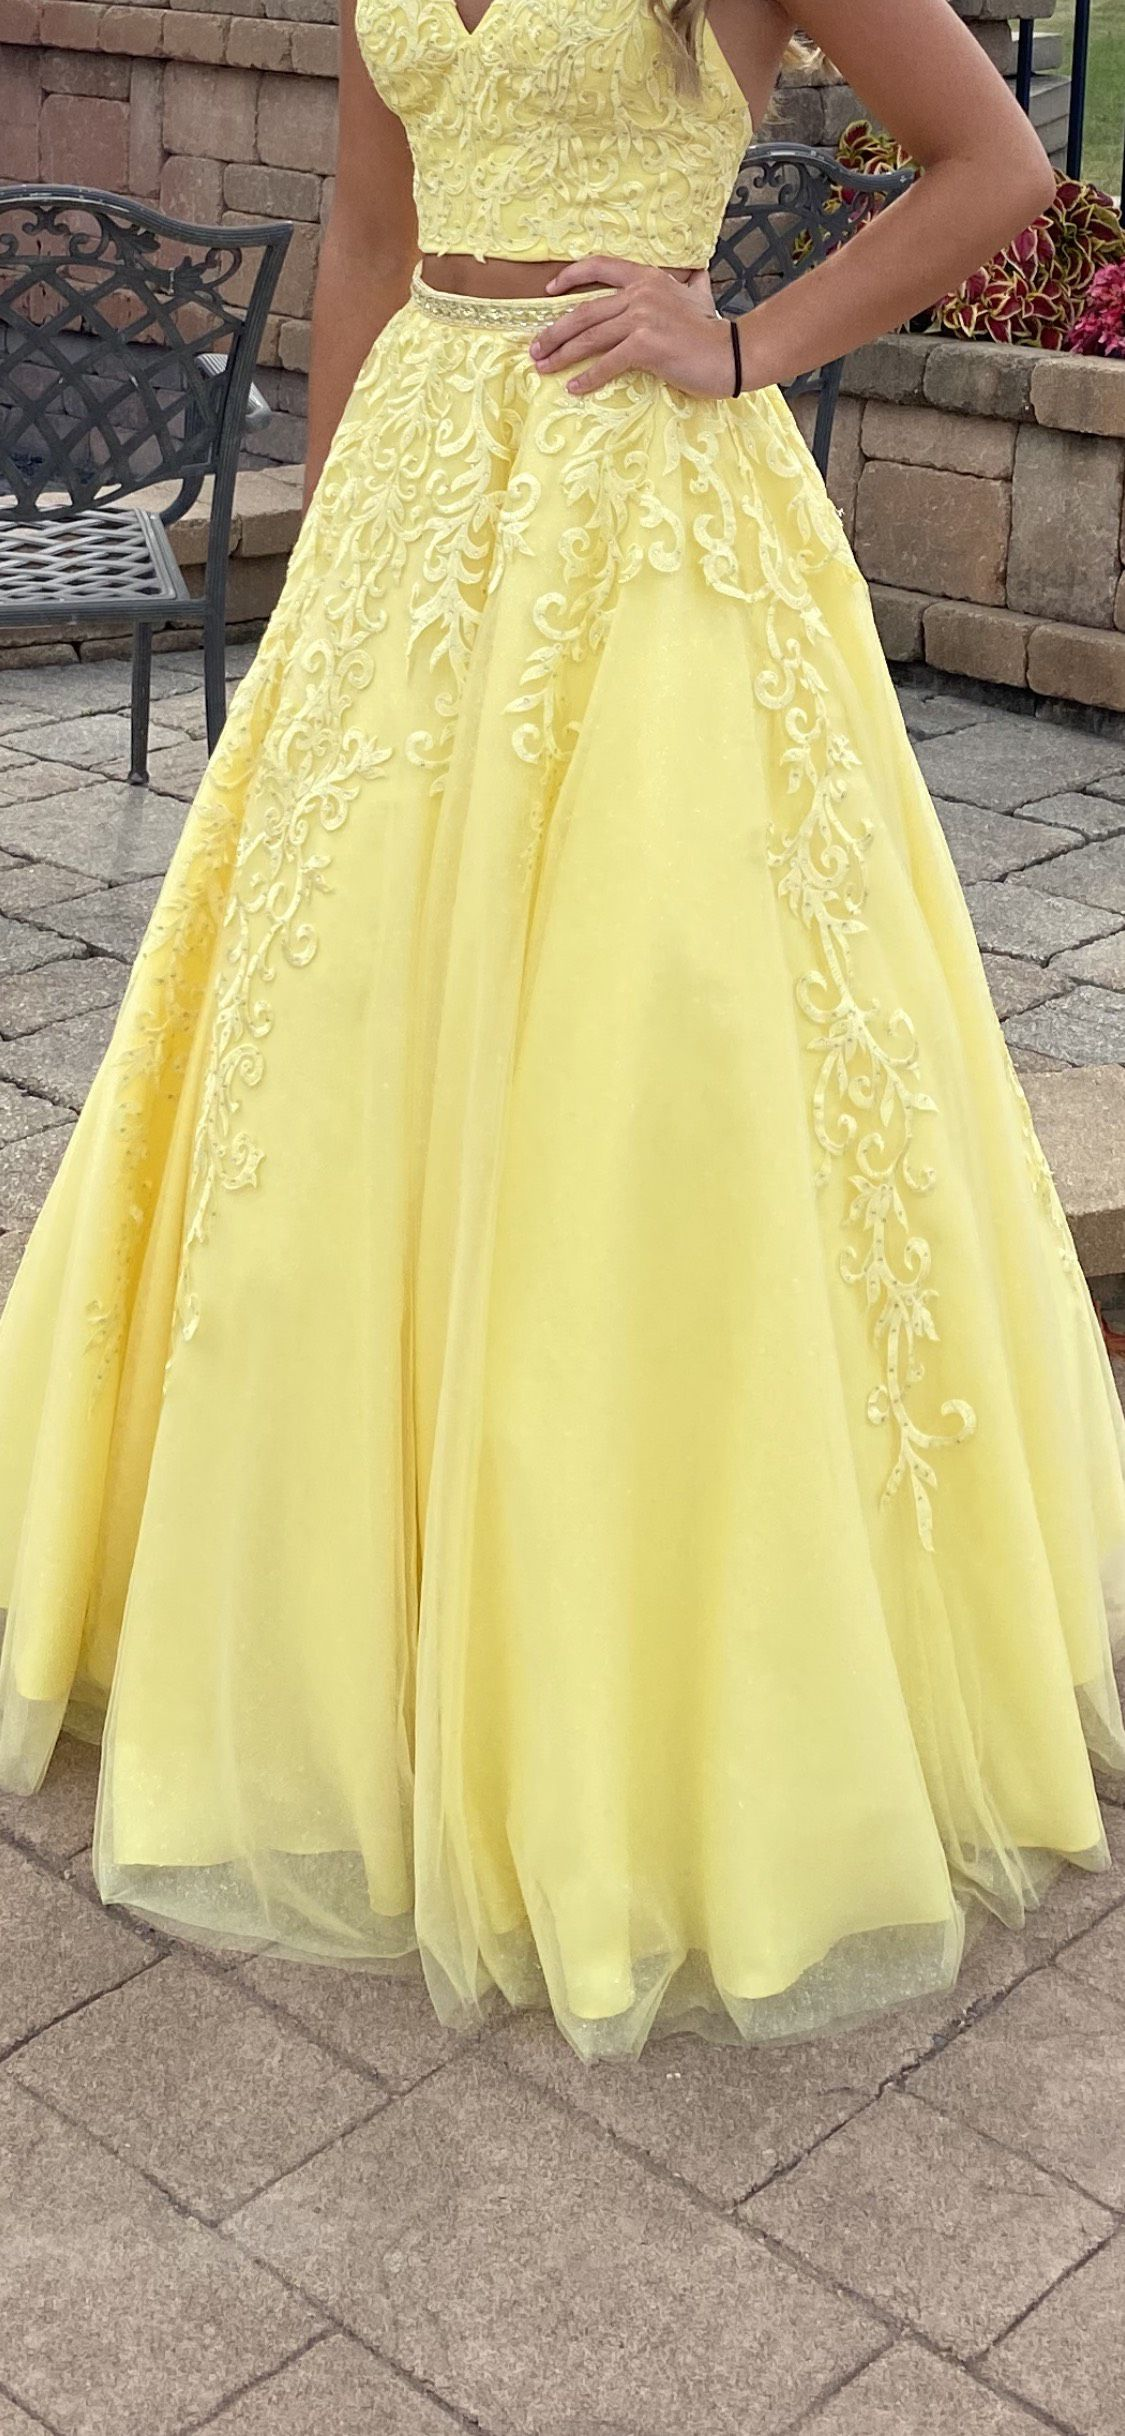 Ellie Wilde Yellow Size 4 Beaded Top Two Piece V Neck A-line Ball gown on Queenly